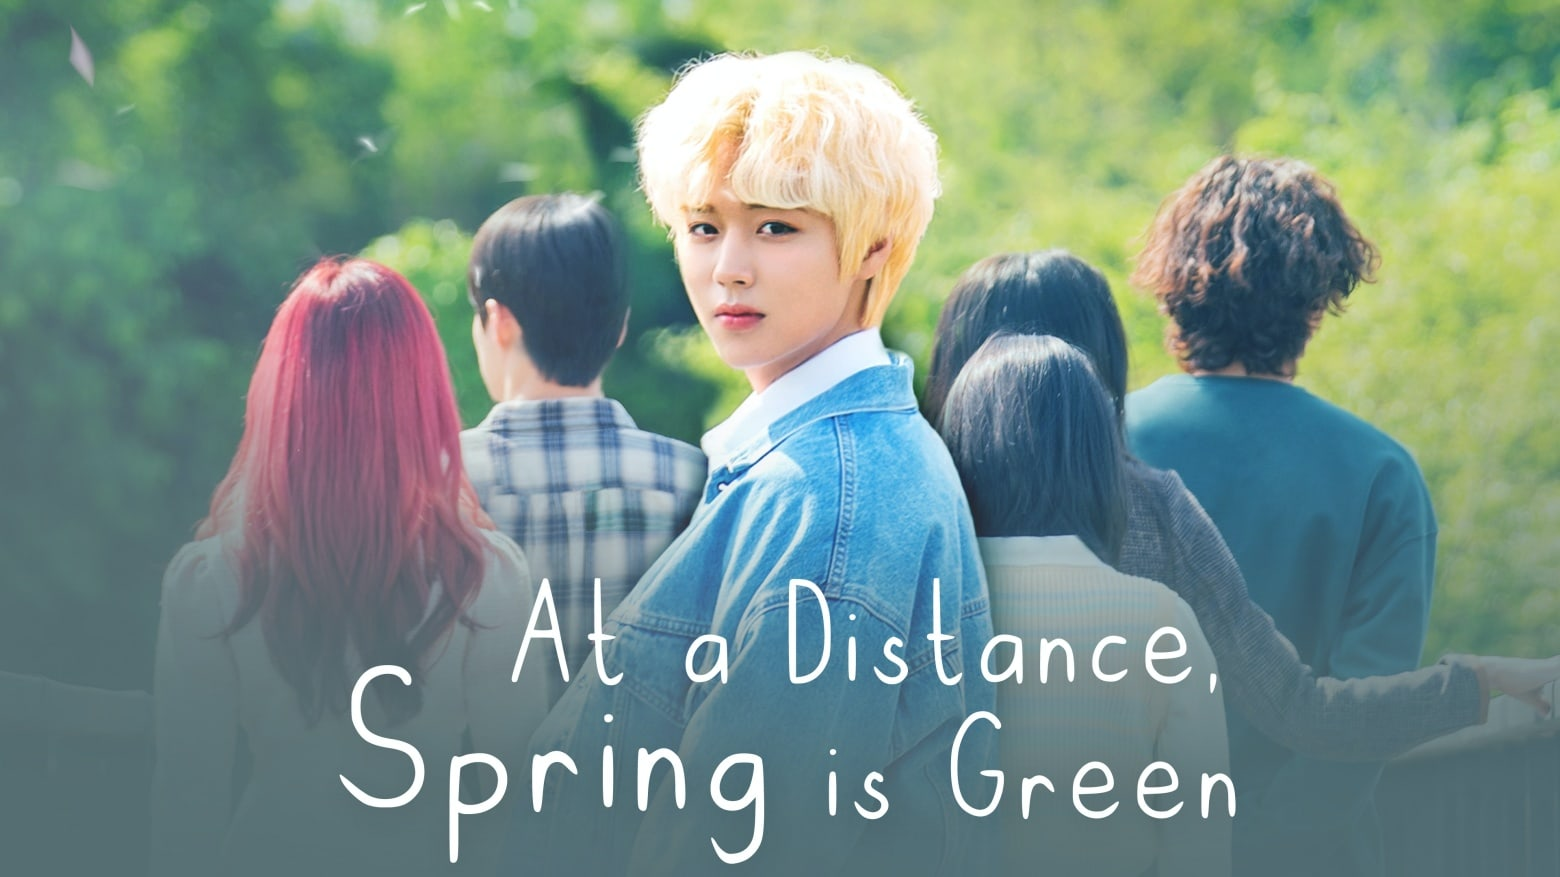 At a Distance Spring is Green7